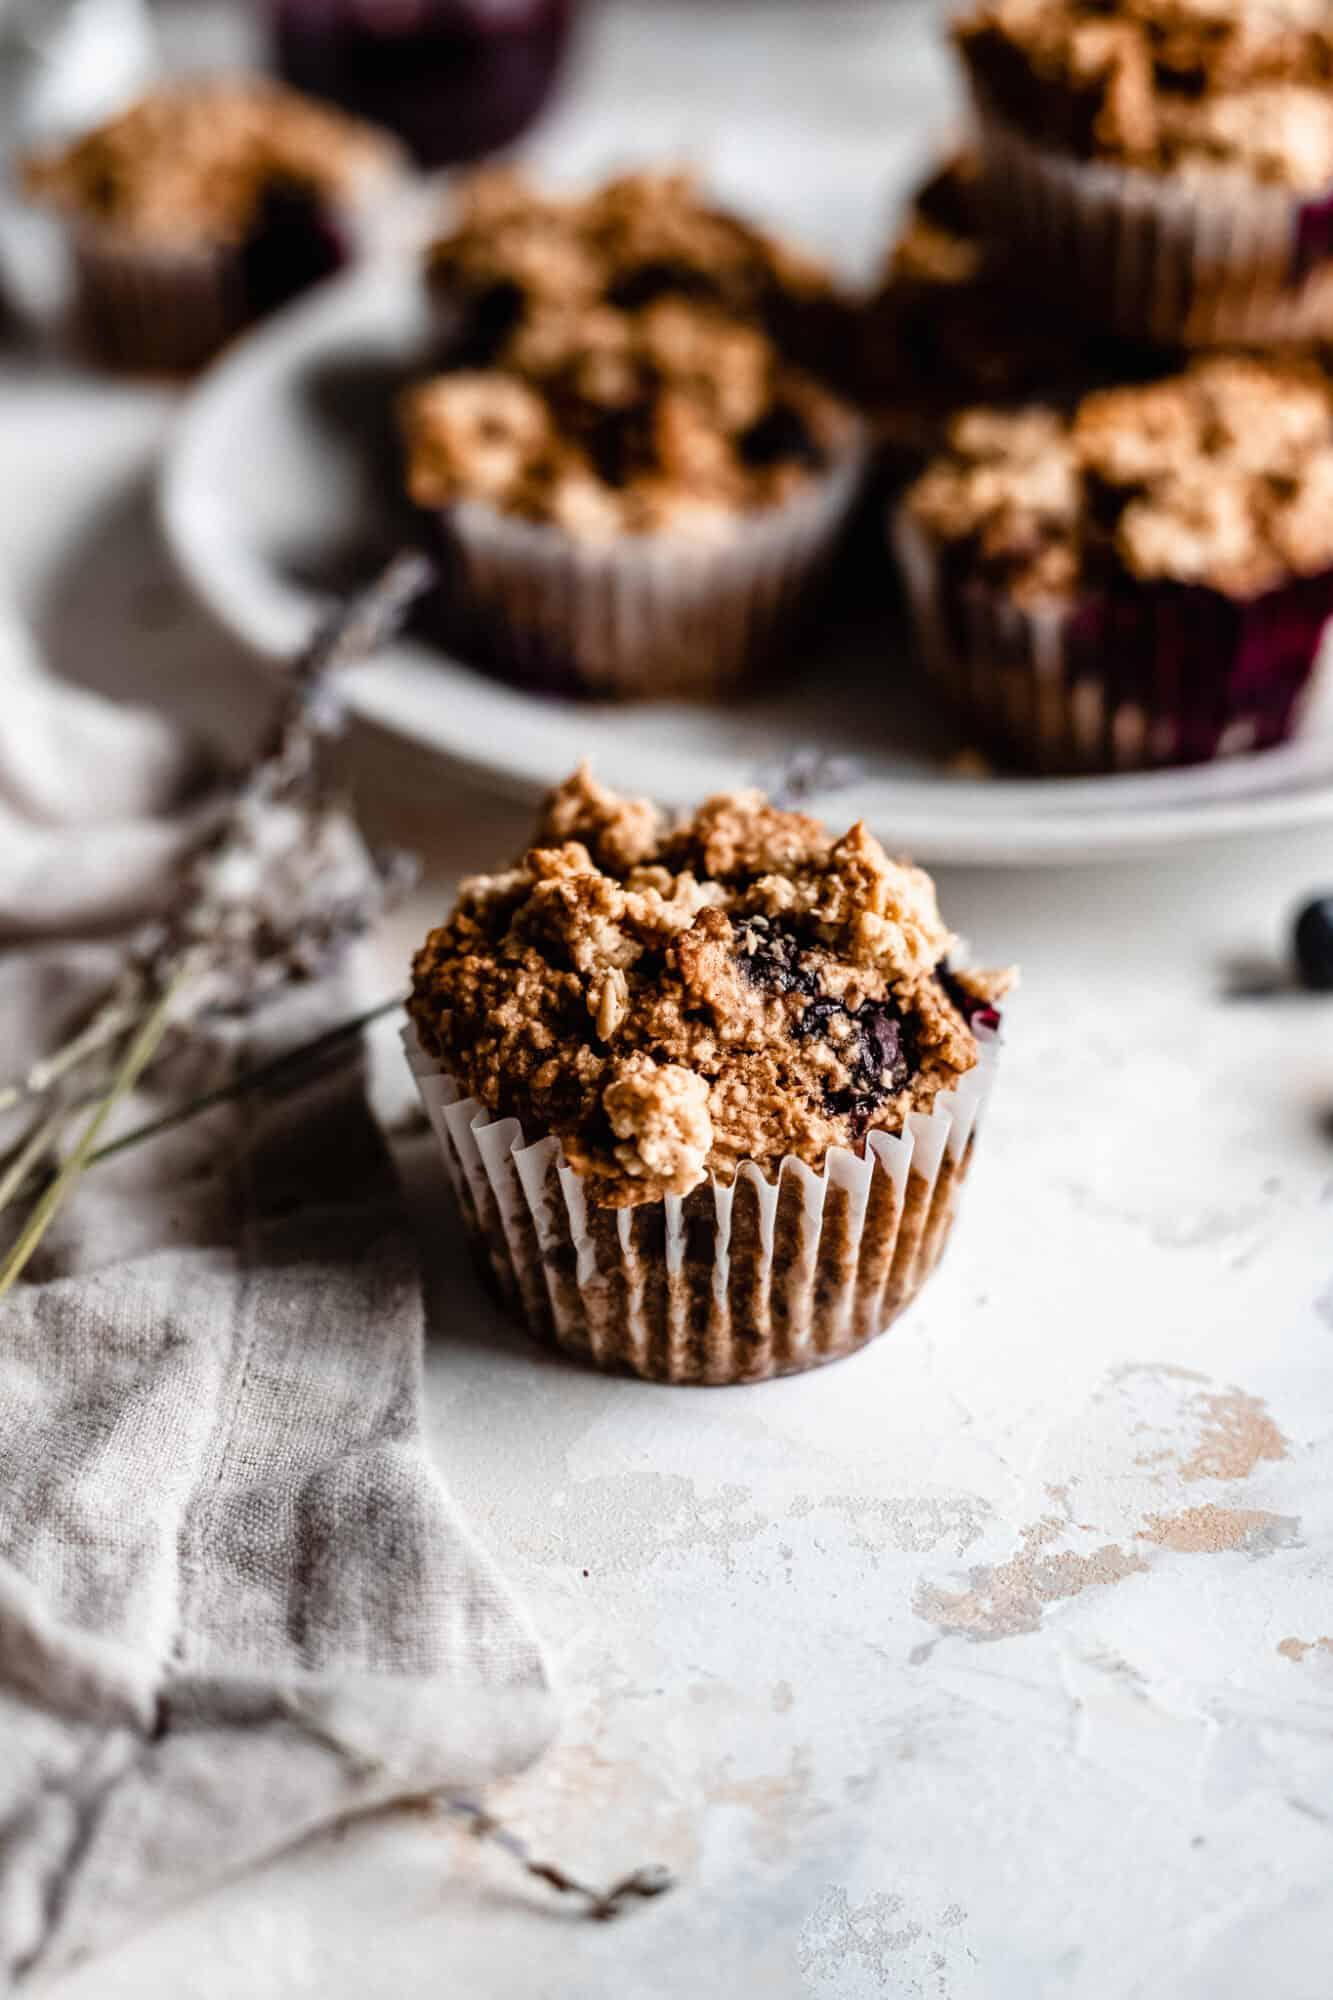 oatmeal blueberry muffin next to plate of muffins